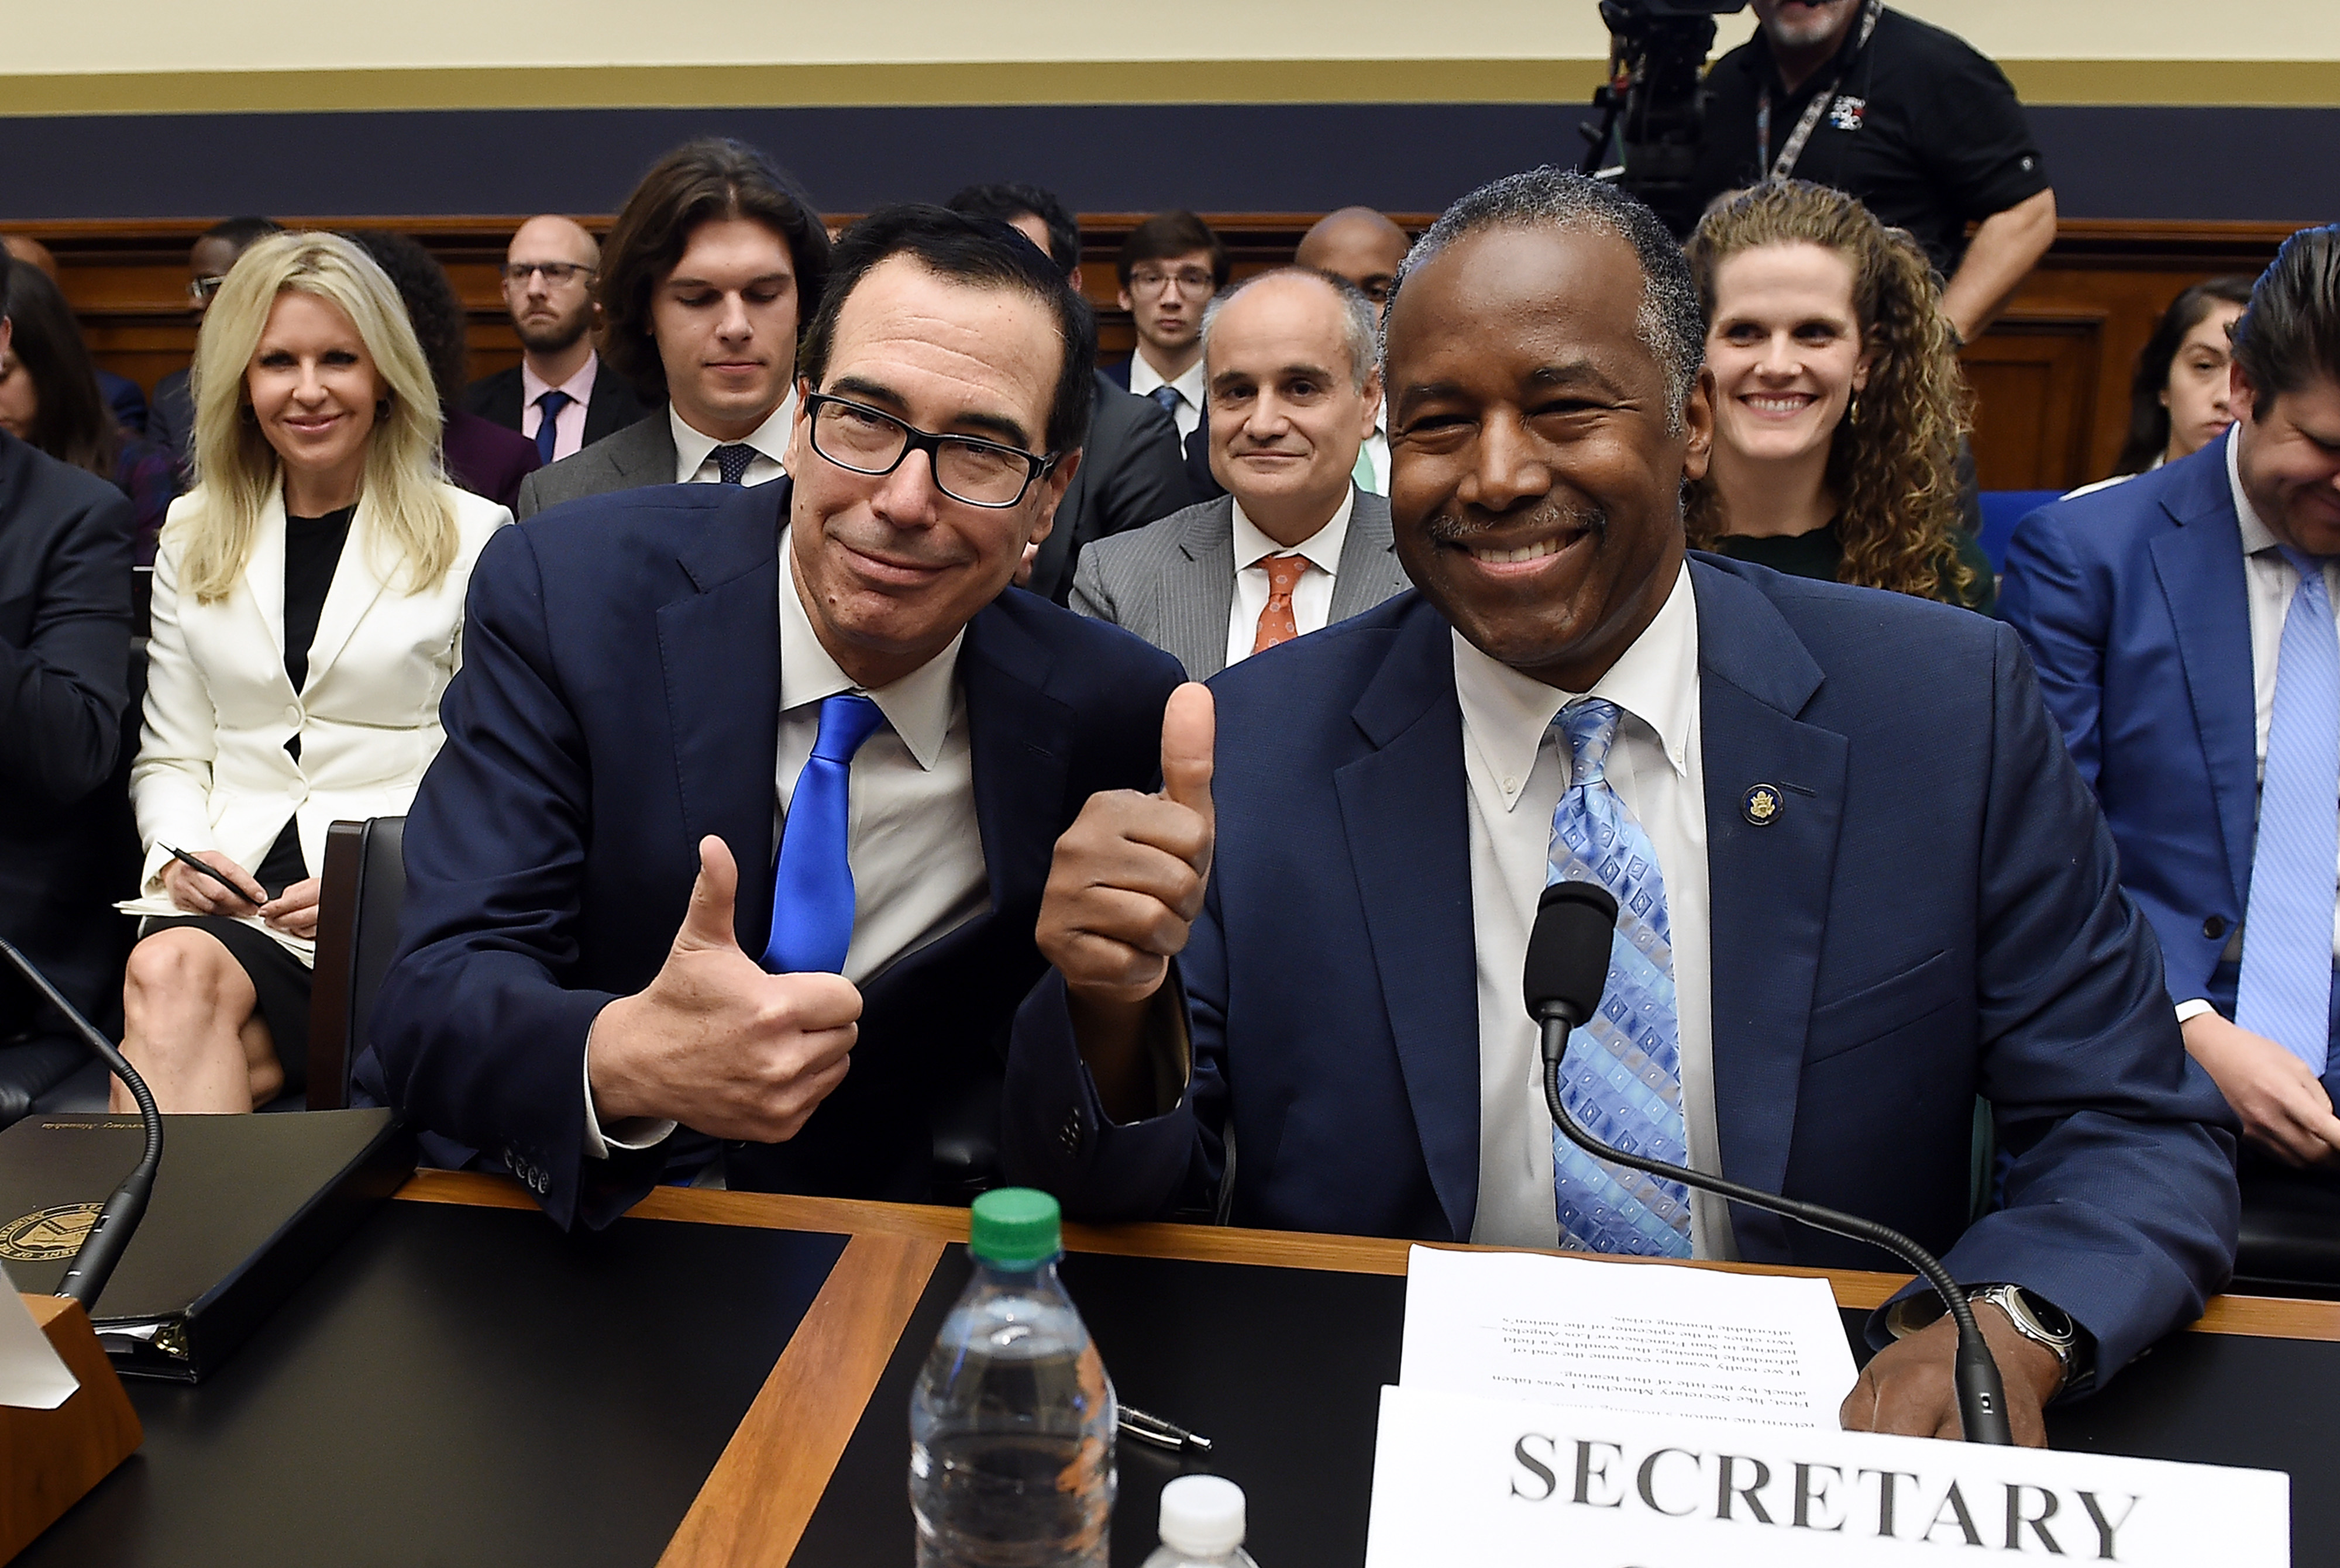 US Treasury Secretary Steven Mnuchin (L) and Secretary of the Department of Housing and Urban Development Ben Carson take their seats as they arrive for a House Financial Services Committee hearing, on Capitol Hill, October 22, 2019 in Washington, DC. (Photo by OLIVIER DOULIERY/AFP via Getty Images)